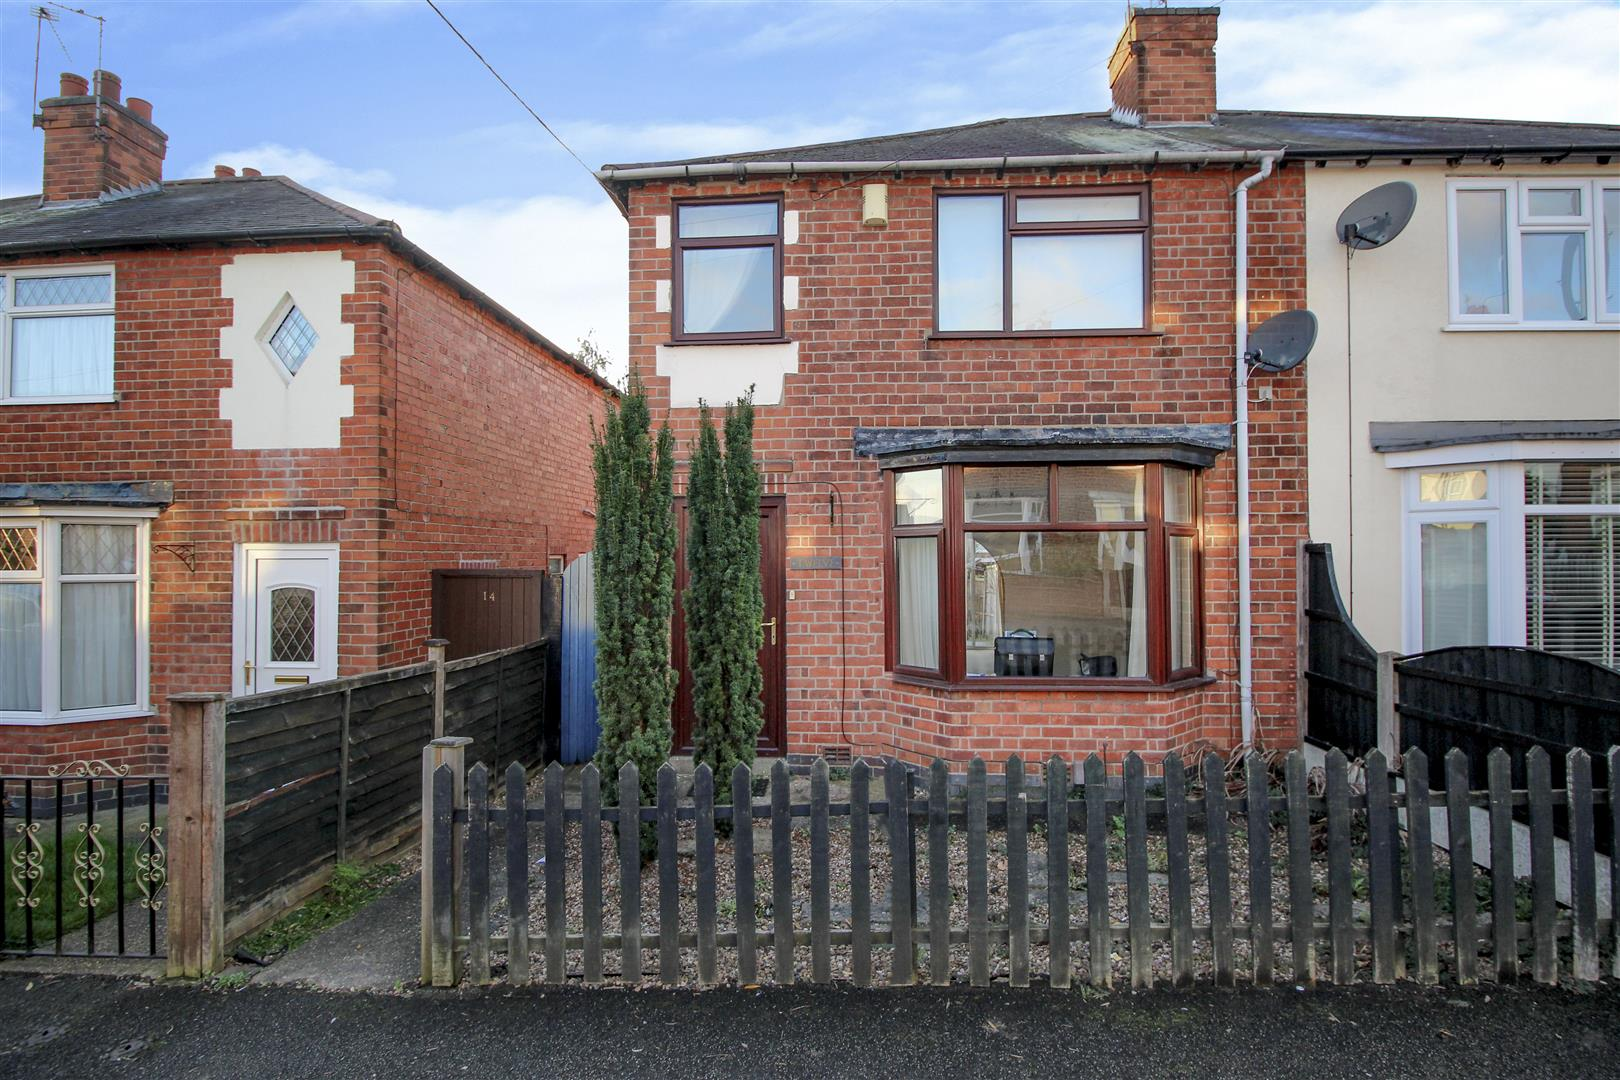 2 Bedrooms Semi Detached House for sale in Myrtle Avenue, Stapleford, Nottingham